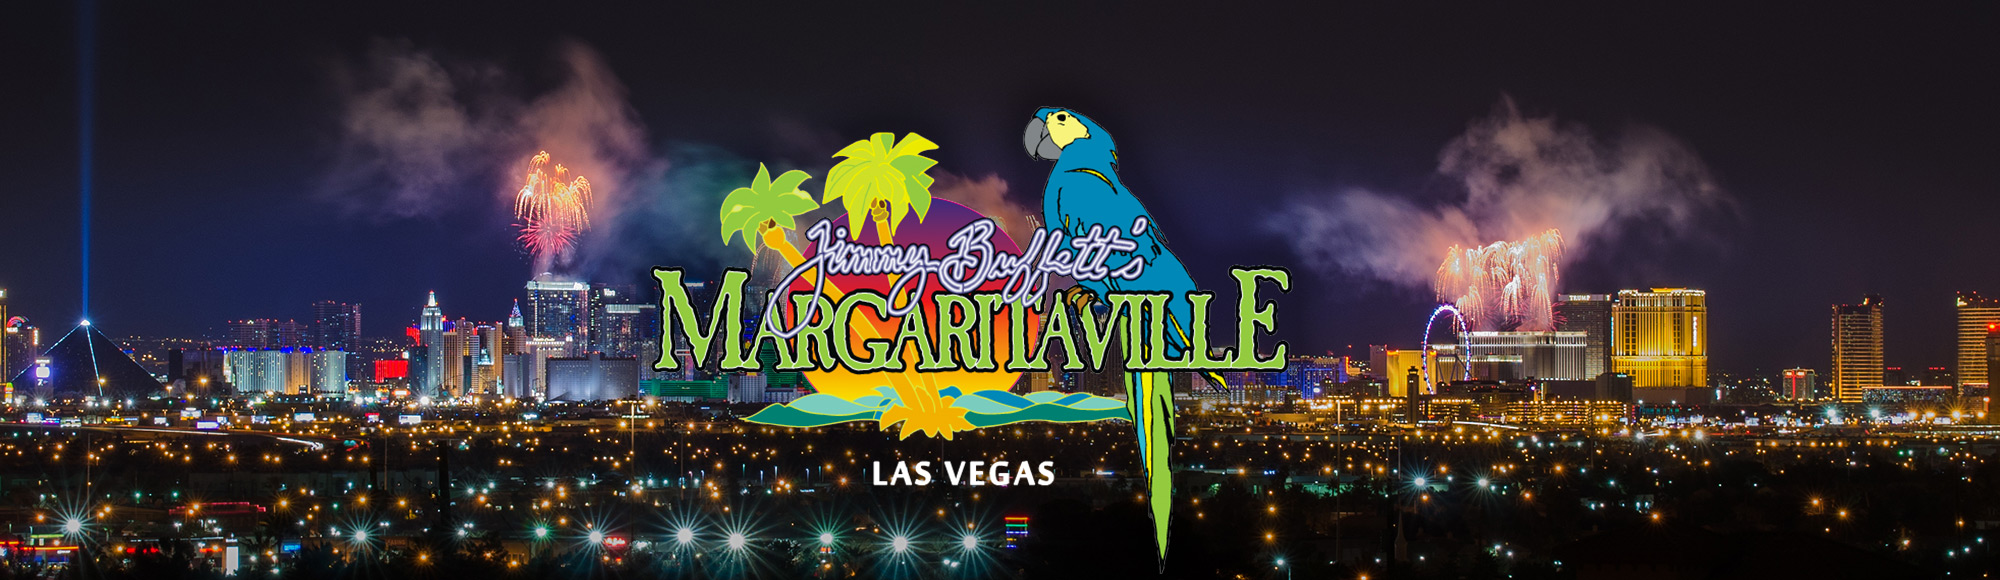 2020 Margaritaville New Year's Eve Party Show Las Vegas ...